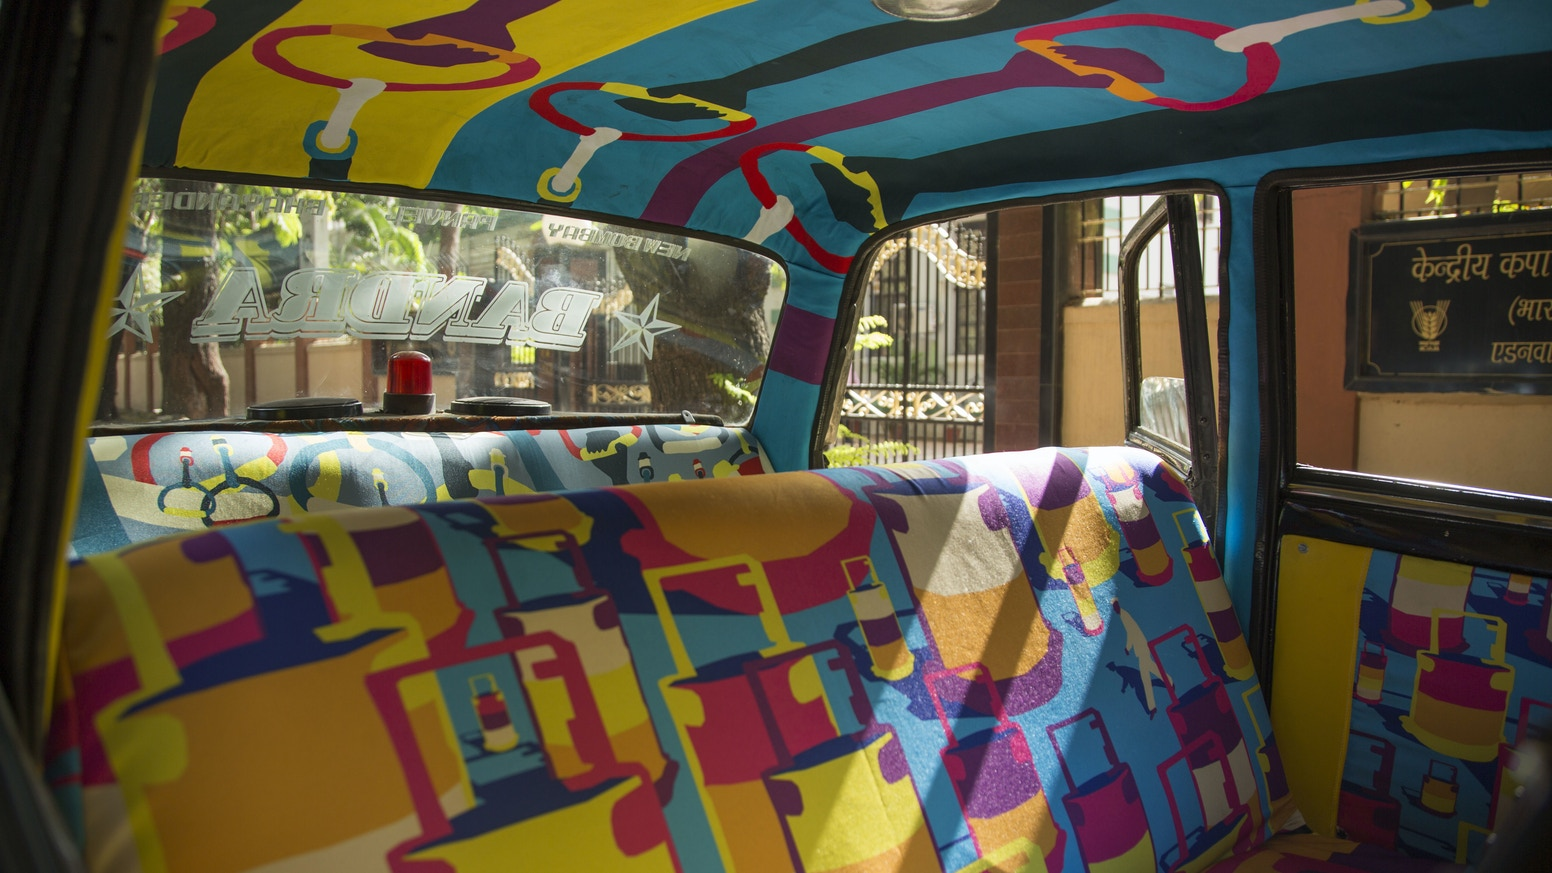 Designers in Mumbai are creating Taxi Fabrics that tell stories from their city, showing Indians the impact good design can have.